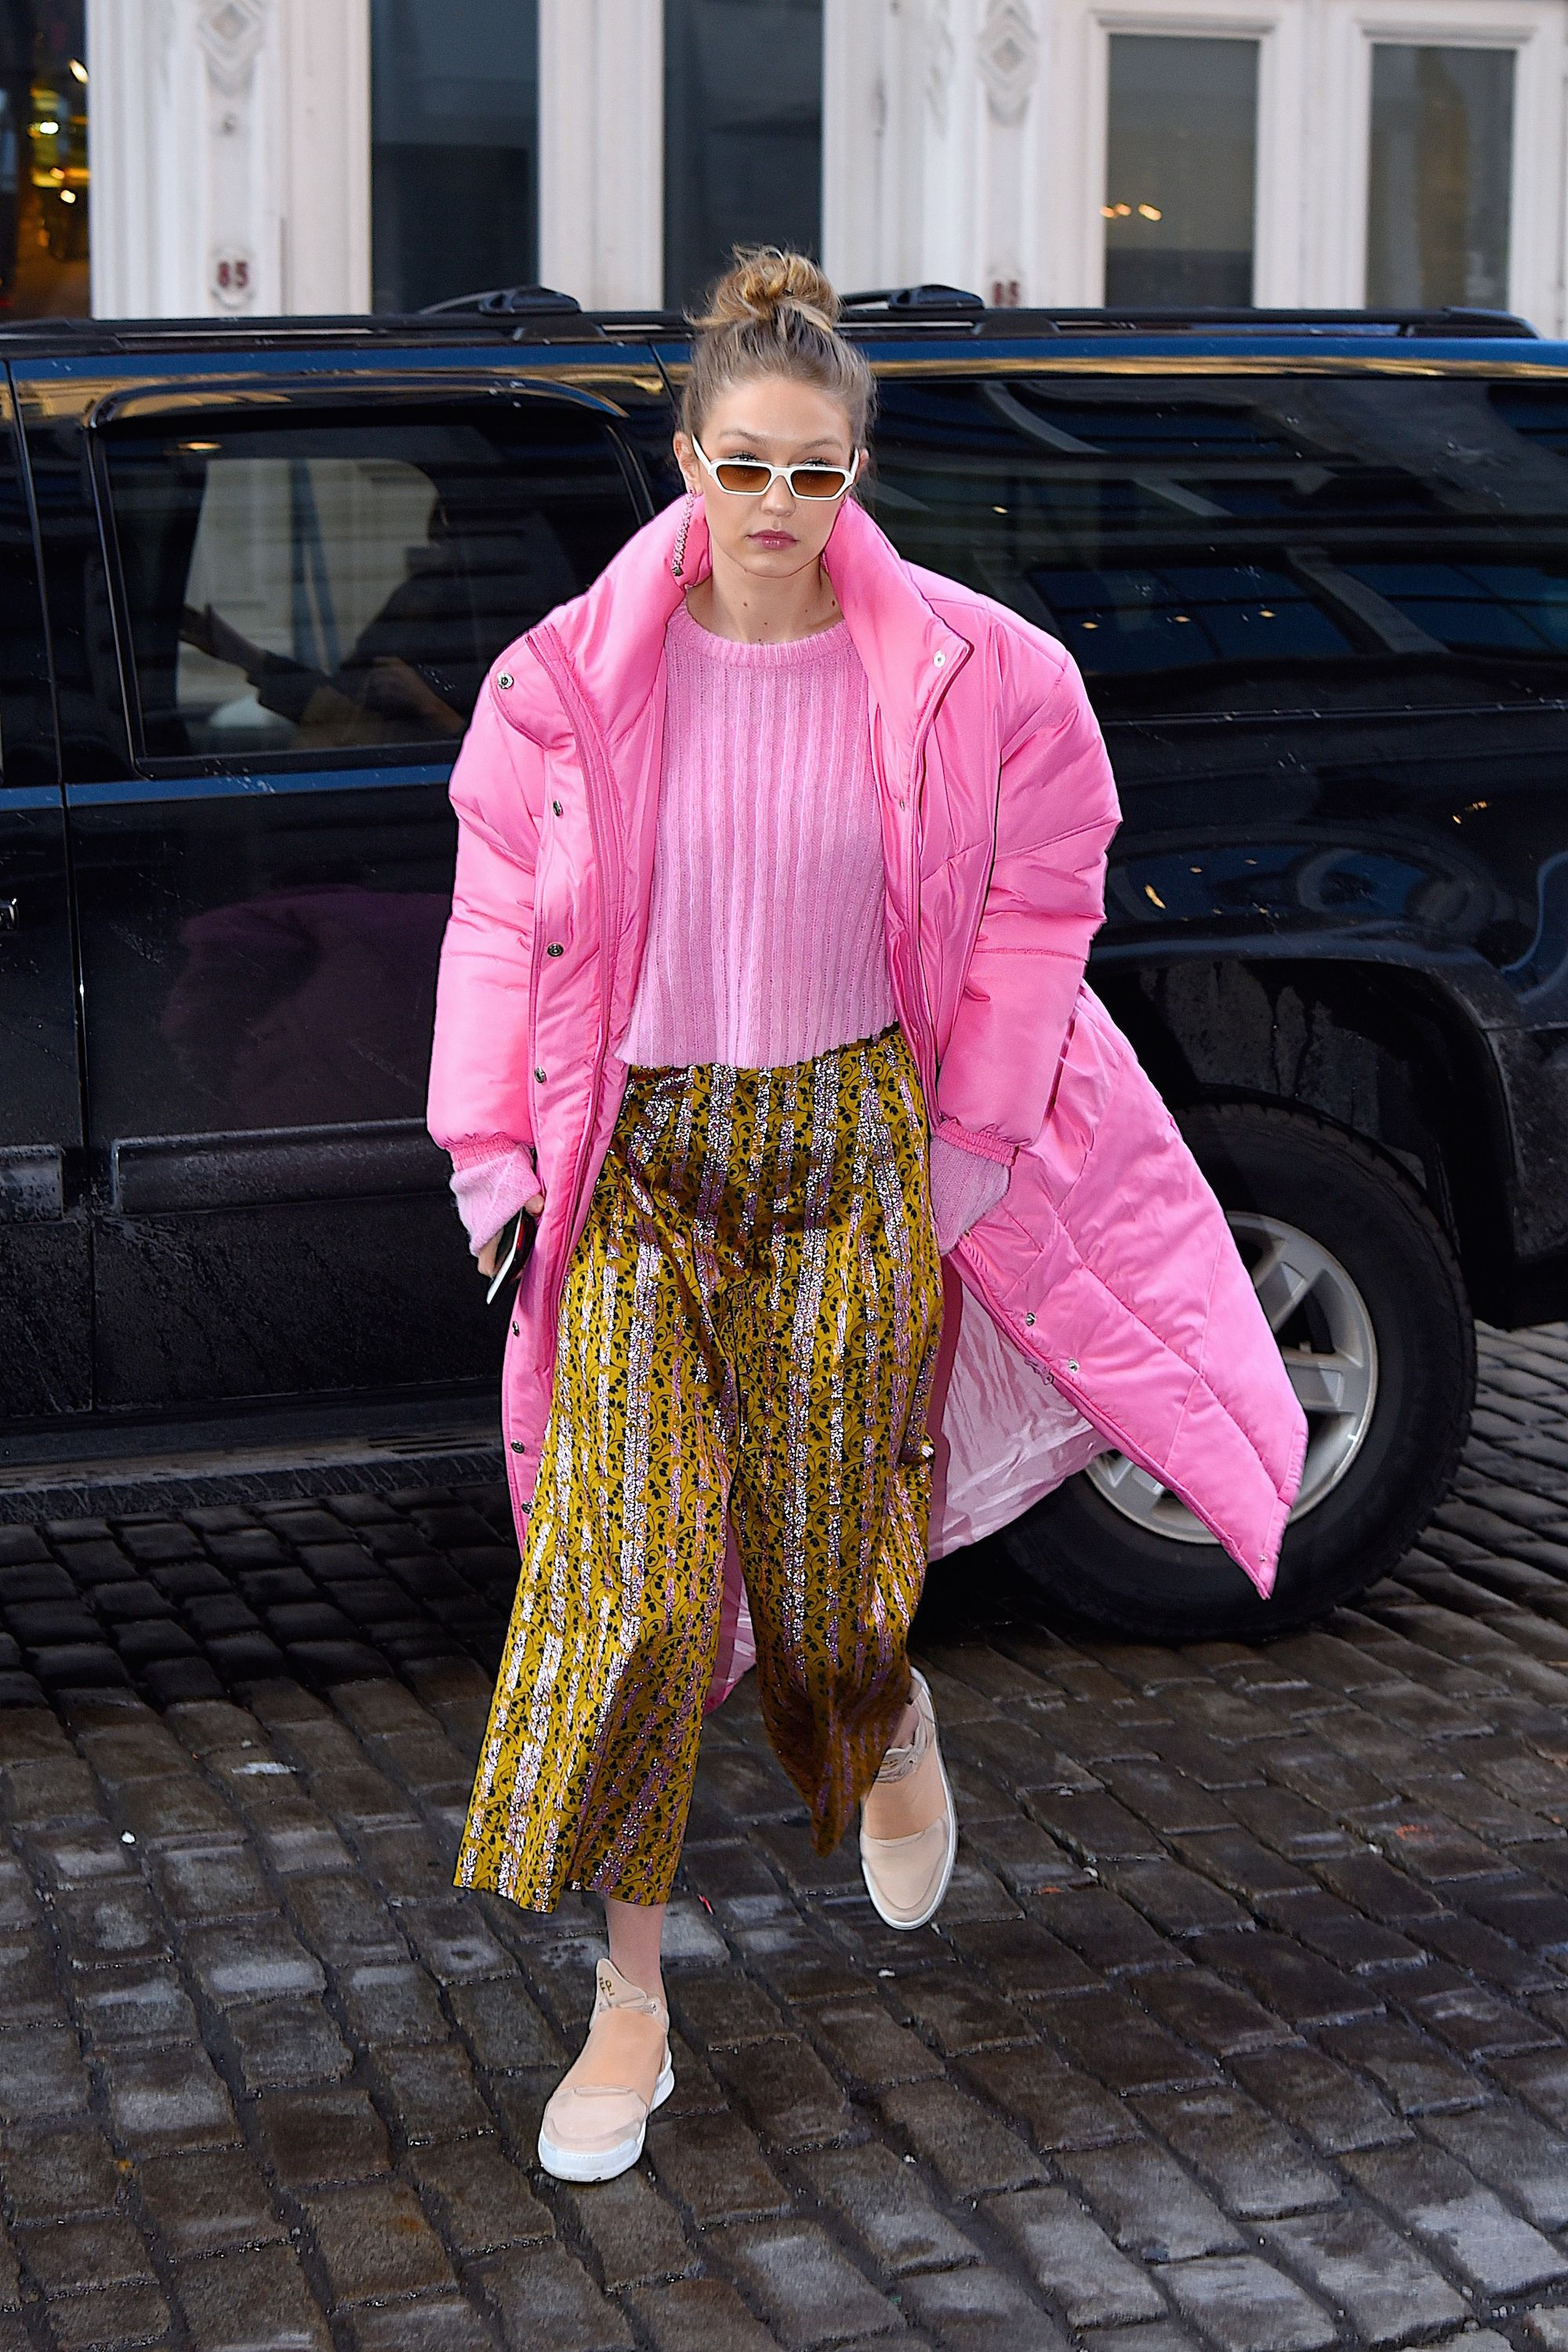 January 9, 2018 Hadid practically stopped traffic in her pink  puffer coat by Christina Ledang. She wore it with an equally pink ribbed shirt from the designer and a pair of sparkly pants from Christopher Bu.